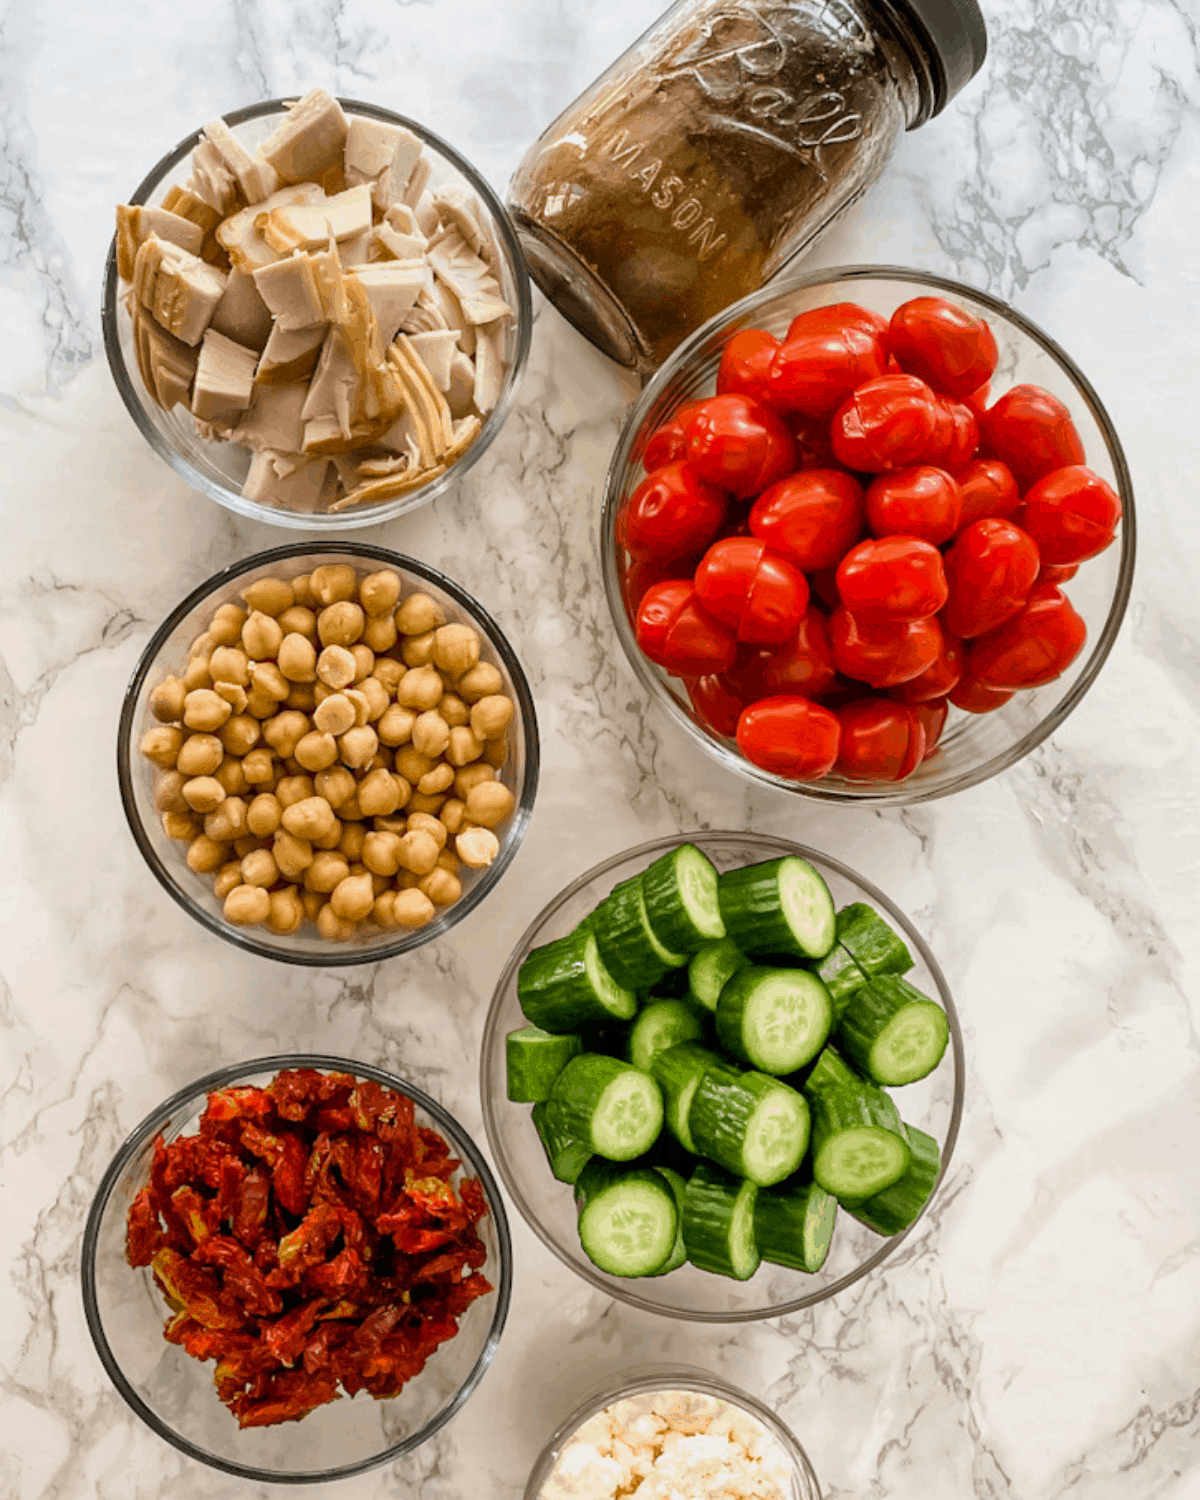 ingredients to make a California salad in a jar recipe